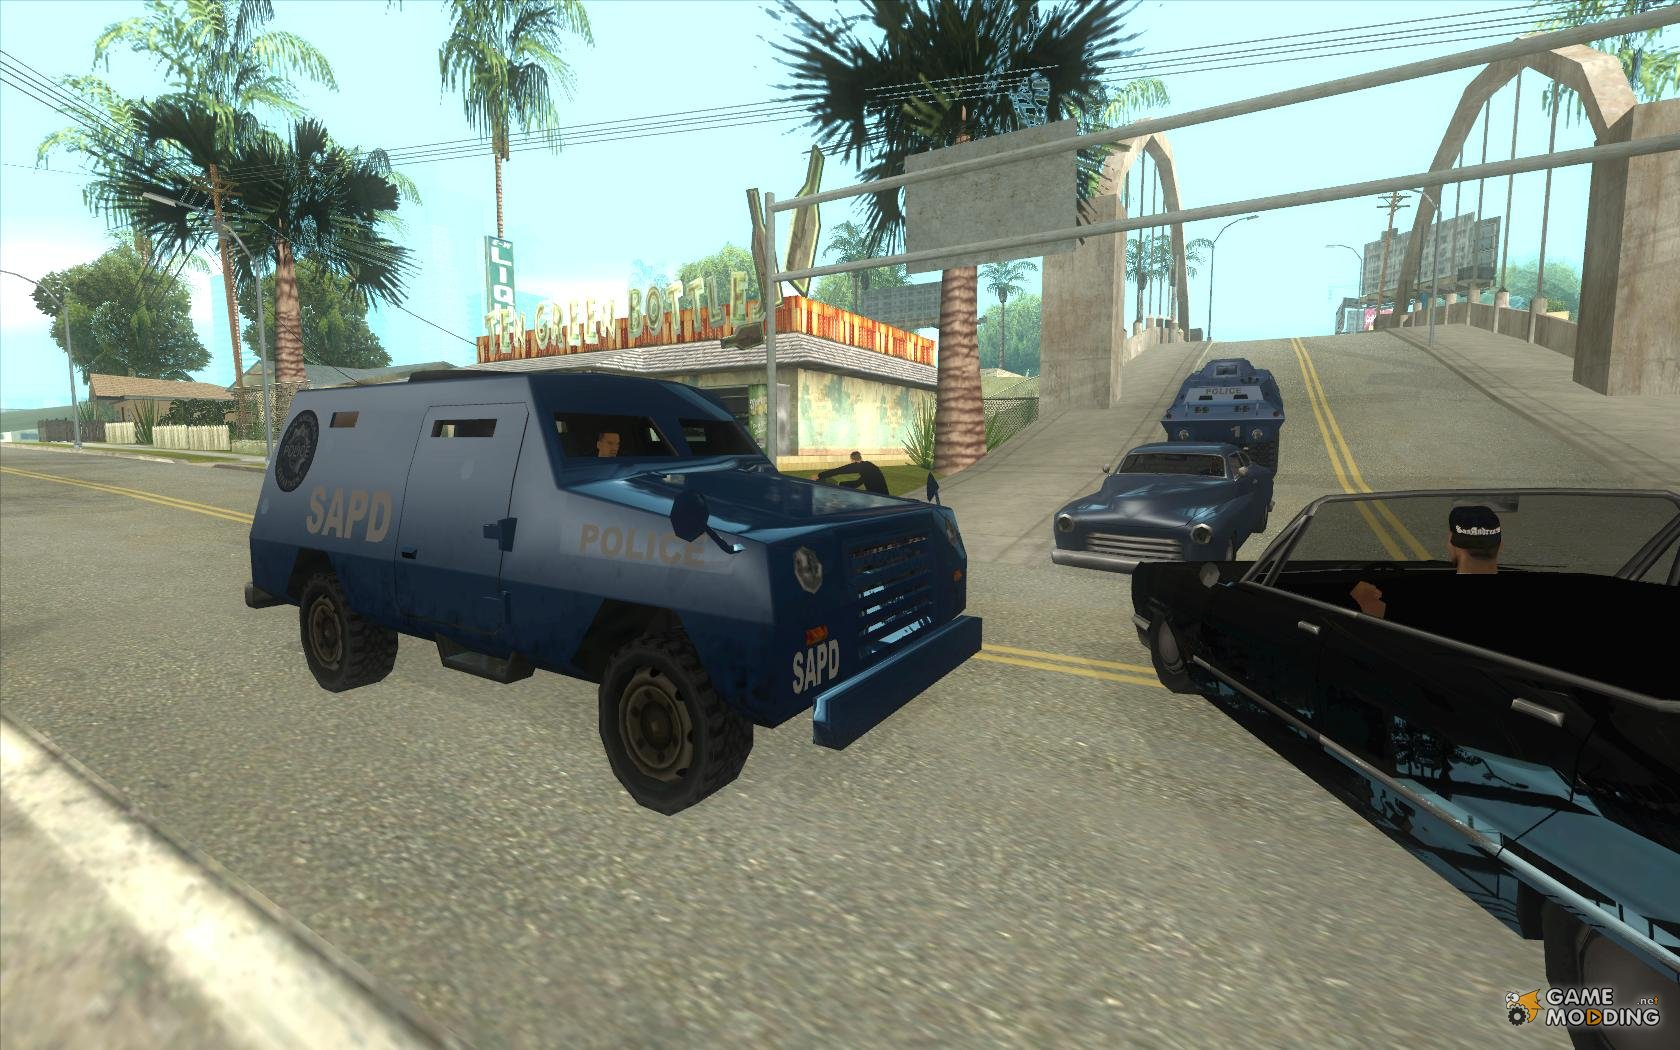 And the FBI S.W.A.T. Truck ride through the streets of for ...